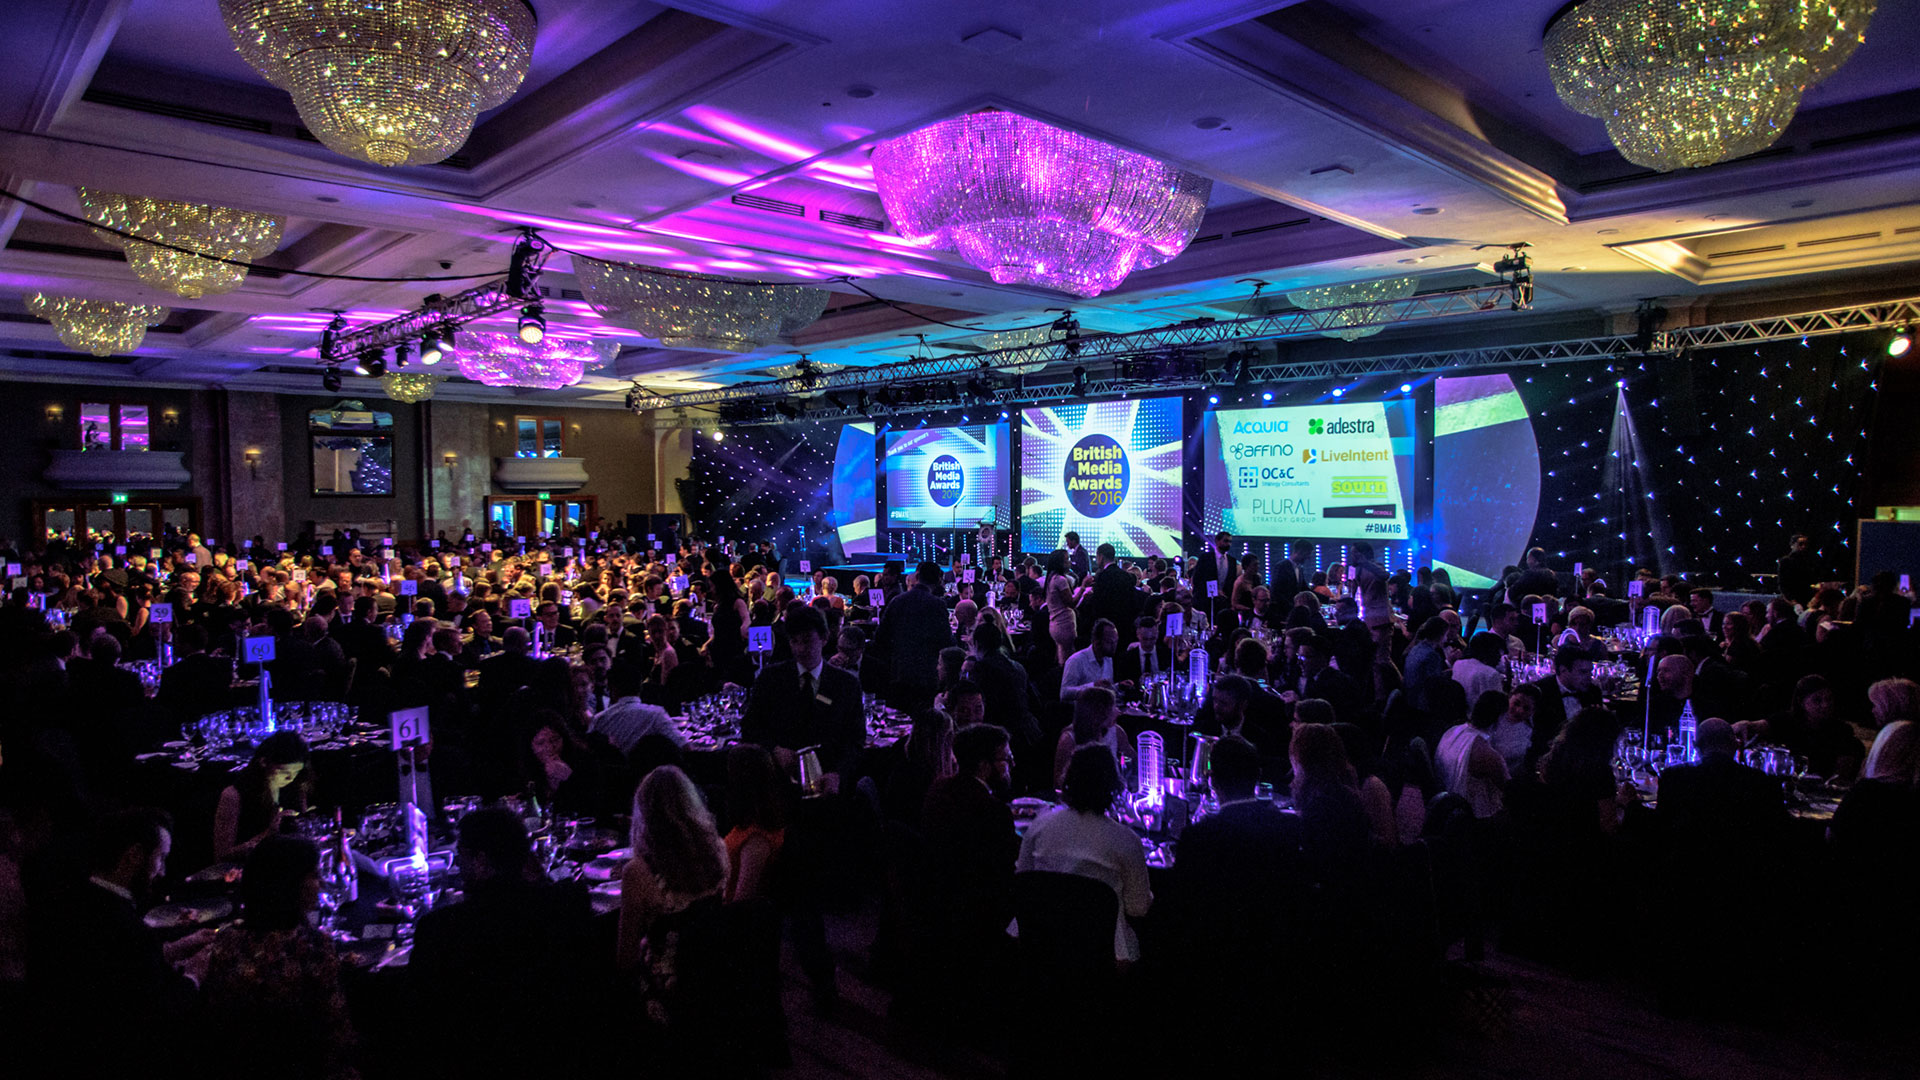 The British Media Awards